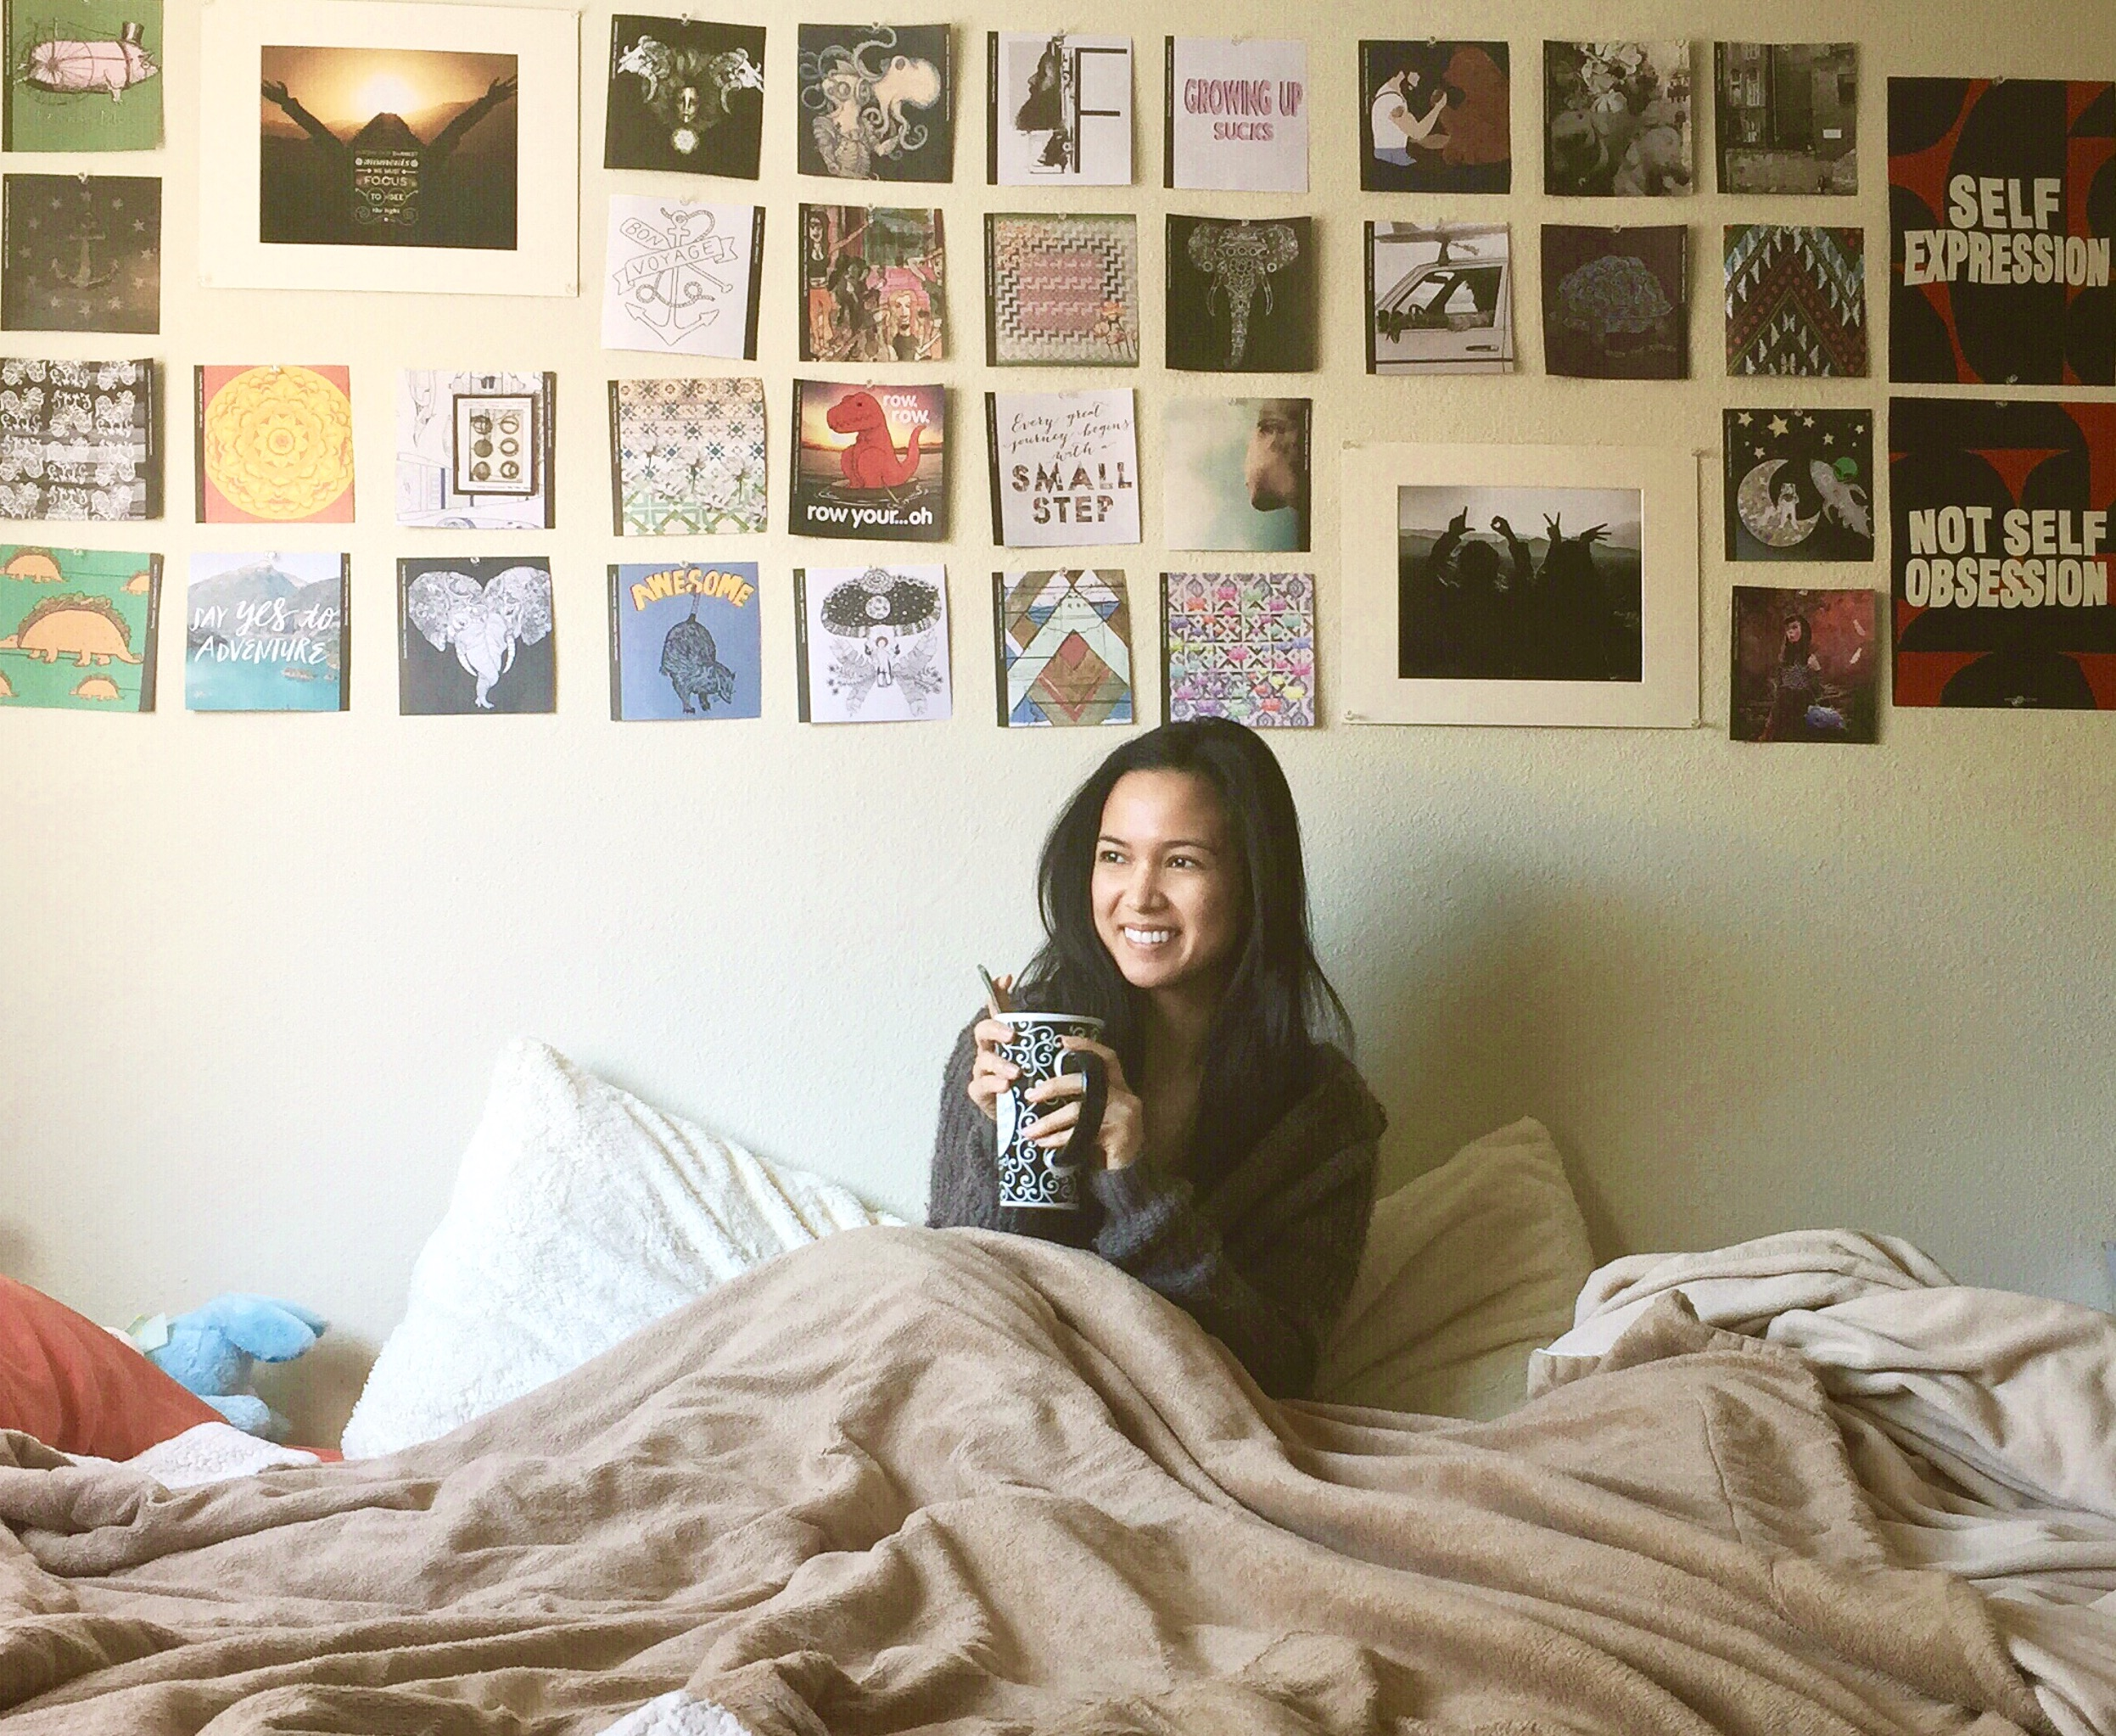 """One of my favorite quotes can be seen on my wall in the picture above: """"Self Expression, Not Self Obsession"""". Can I get an AMEN?! ;)"""